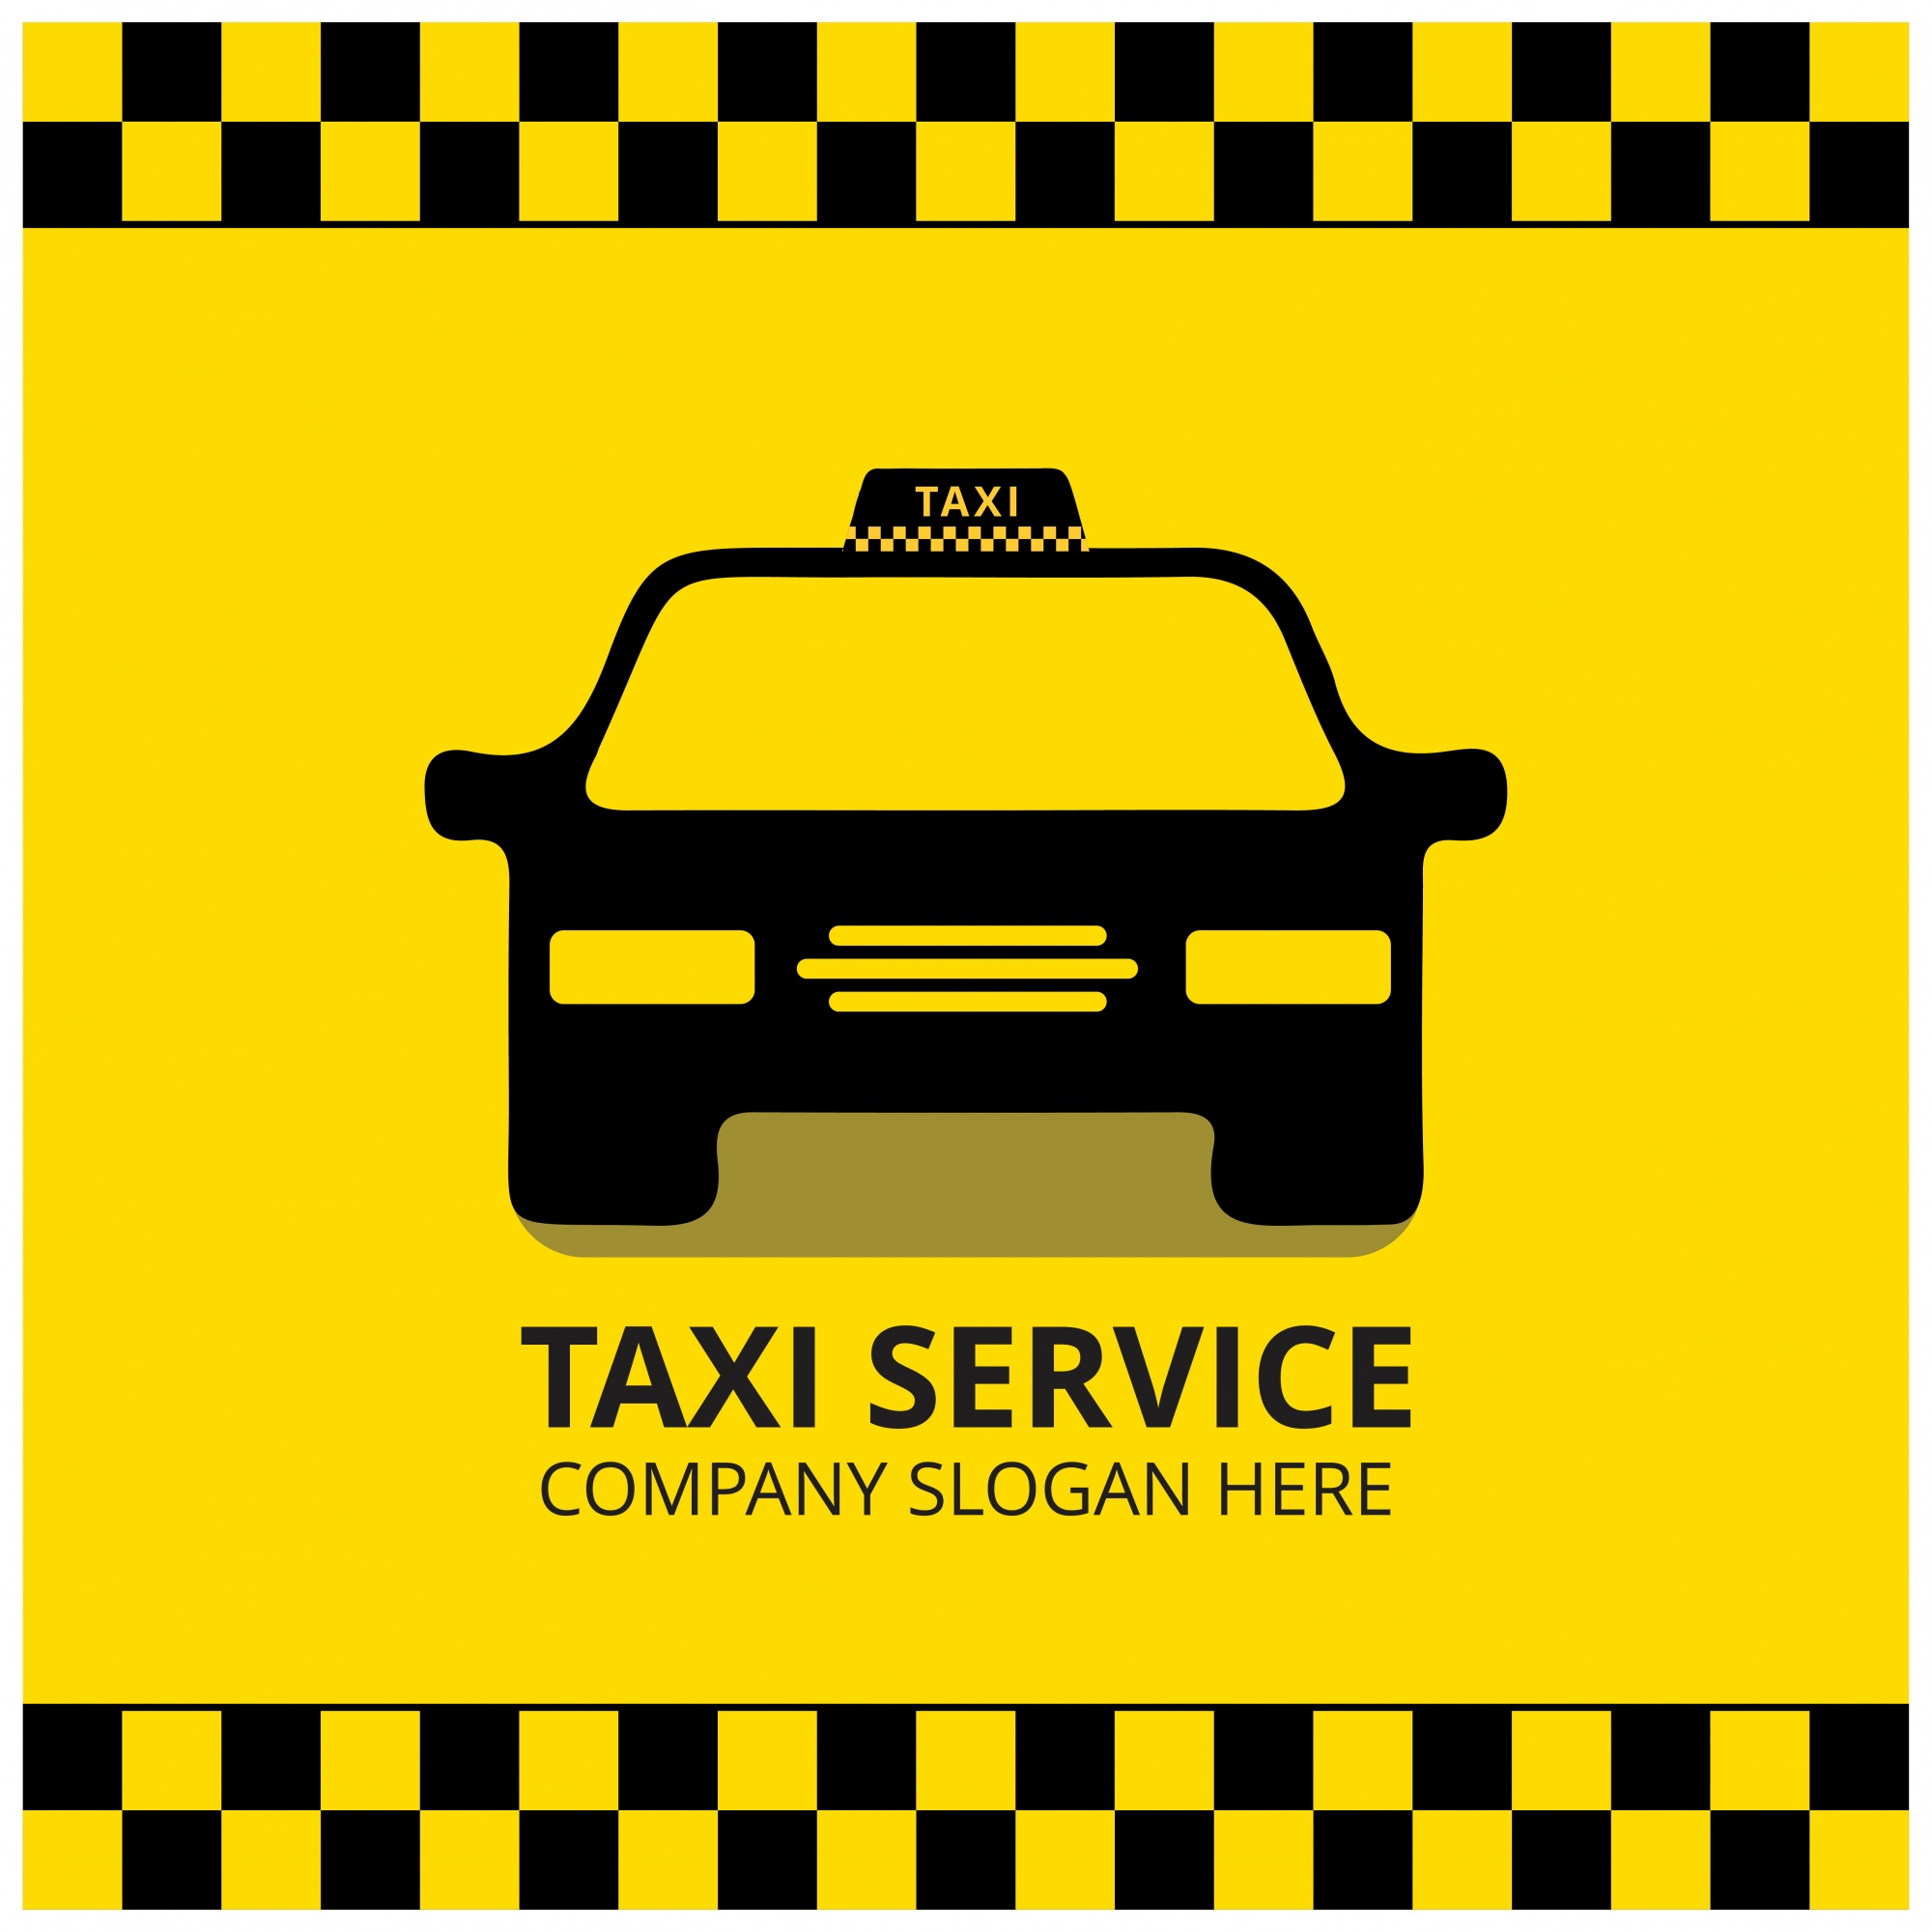 Taxi Icon Taxi Taxi Black Taxi Car Sfondo Giallo